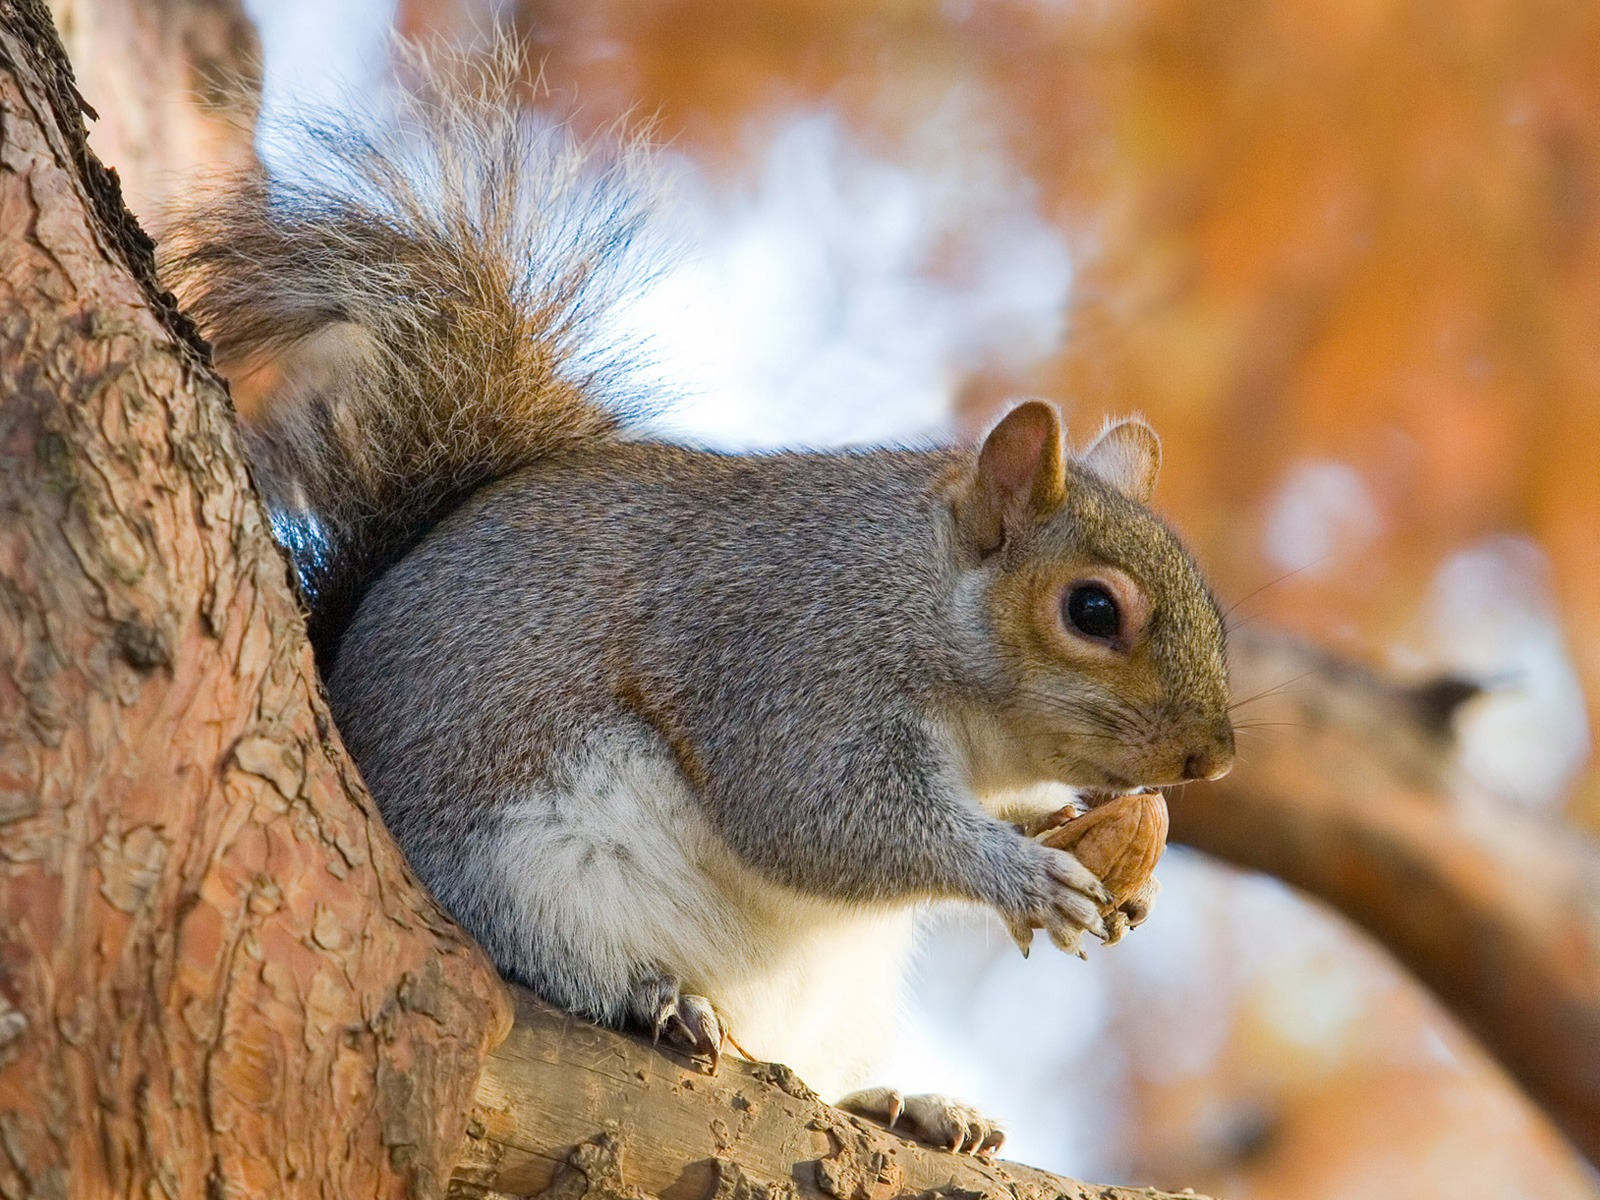 Squirrel with muscles